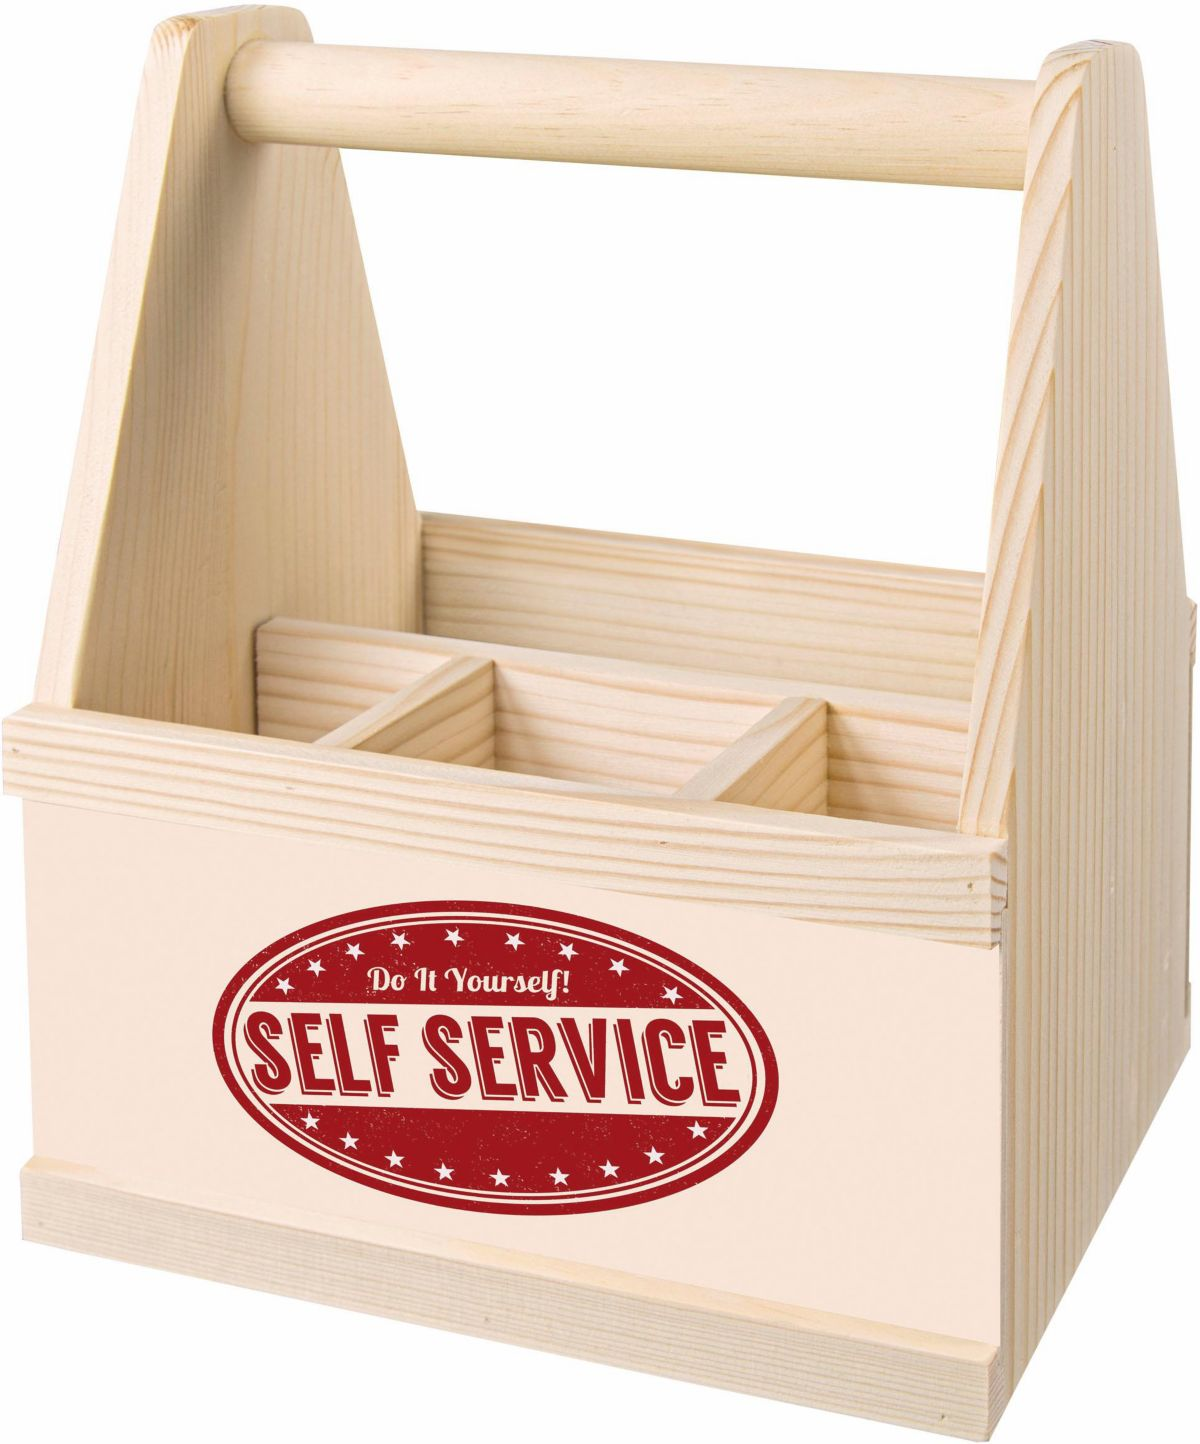 Contento Besteck Caddy »Self Service«